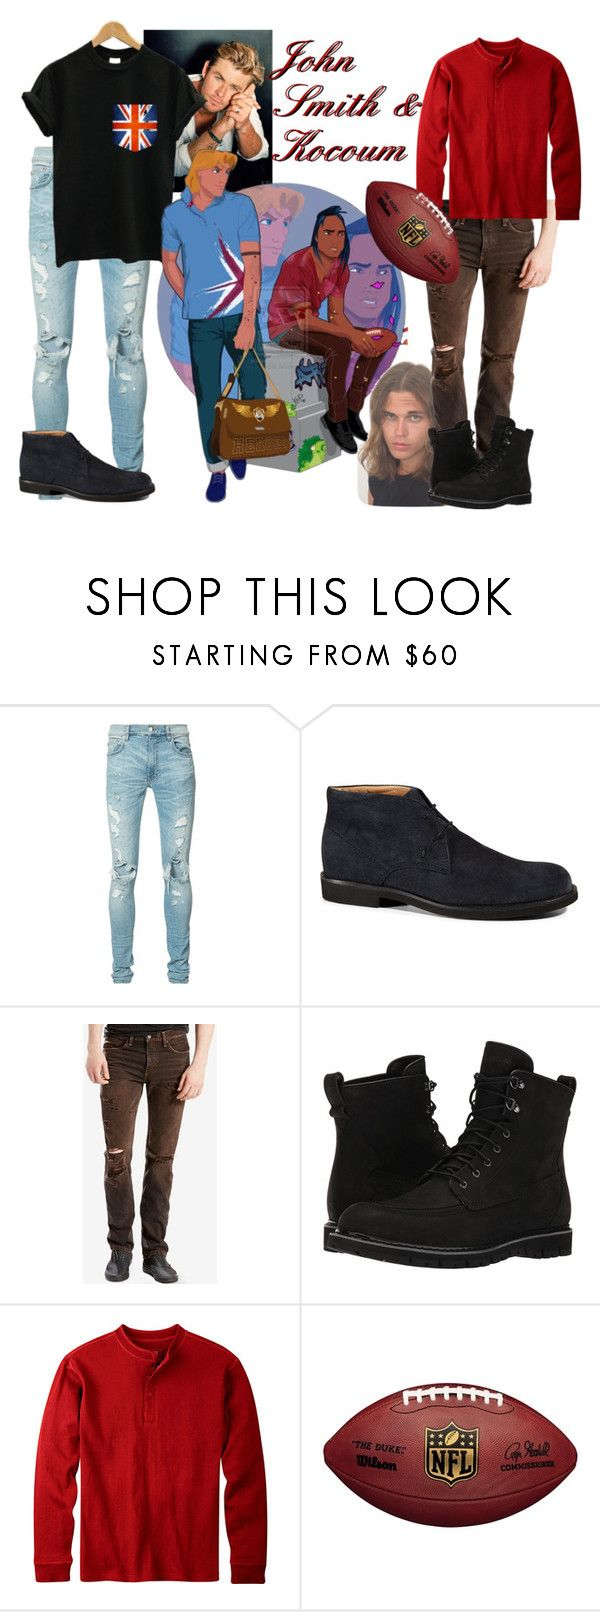 """Disney Gone College - JOHN SMITH & KOCOUM"" by blackest-raven ❤ liked on Polyvore featuring AMIRI, Disney, Tod's, Levi's, Timberland, Mountain Khakis, men's fashion and menswear"